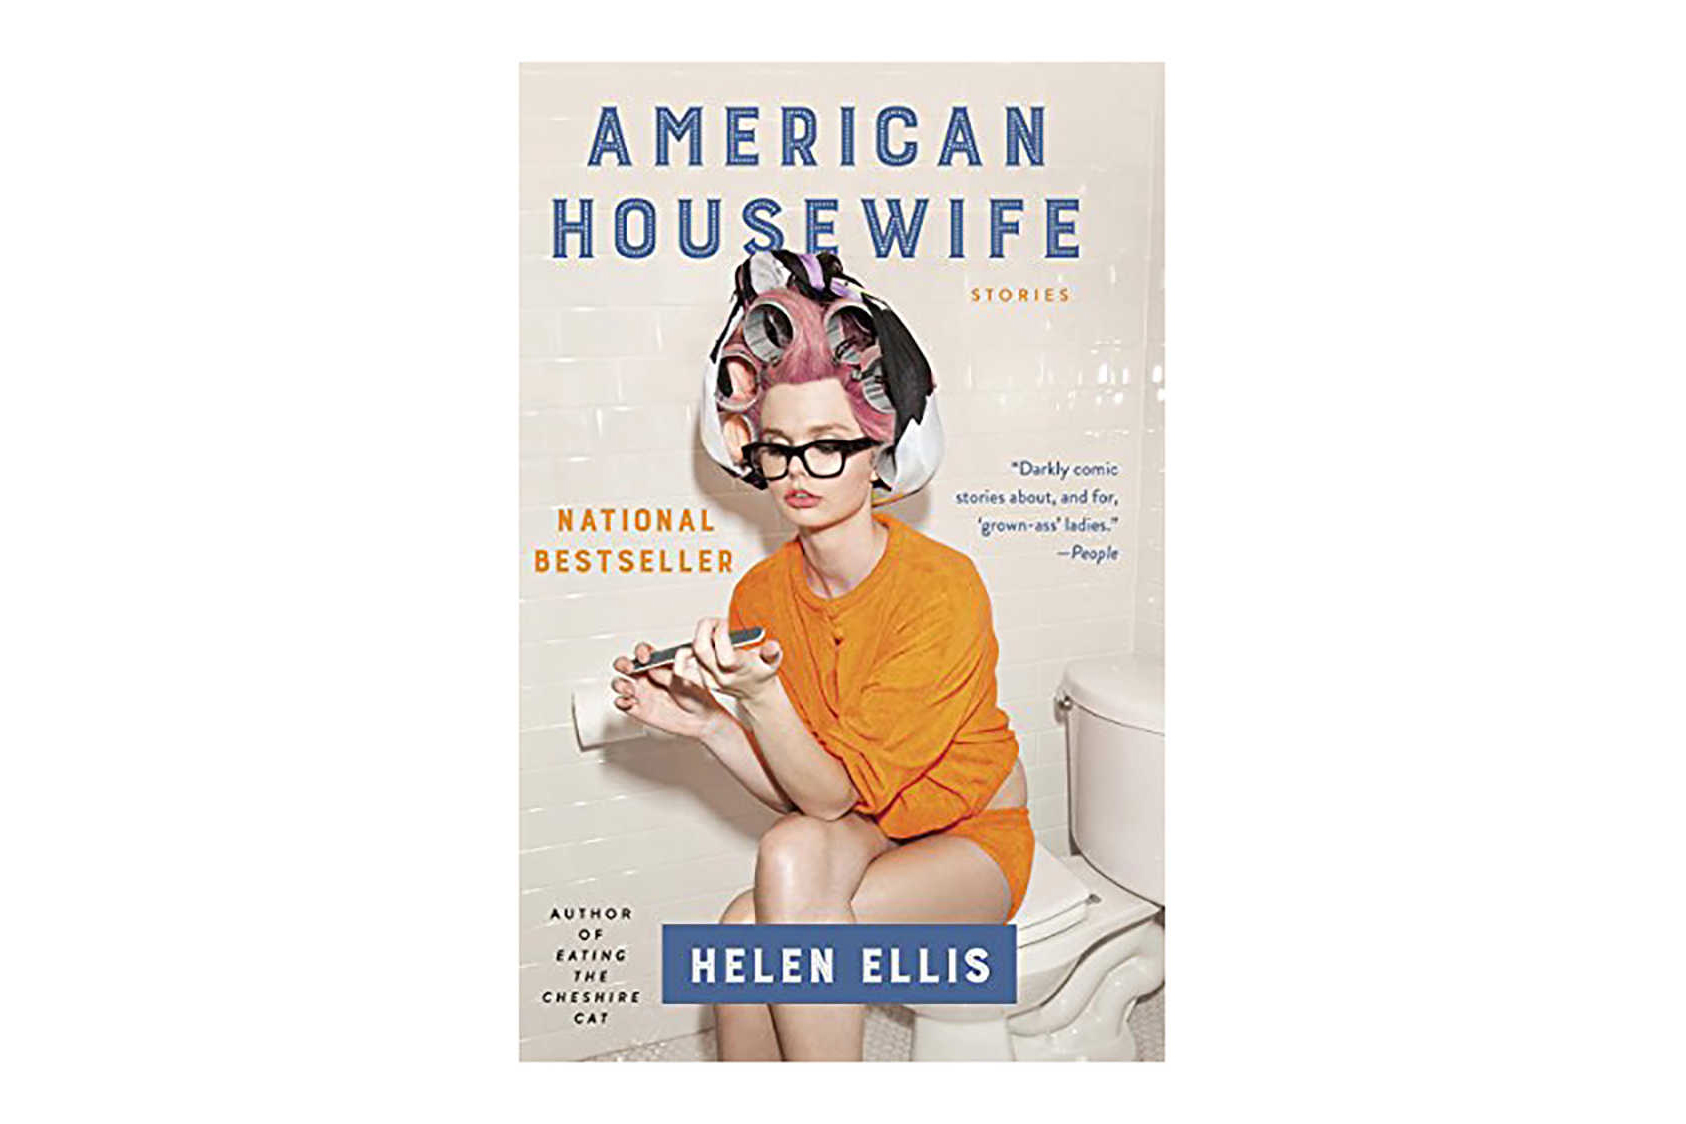 American Housewife by Helen Ellis